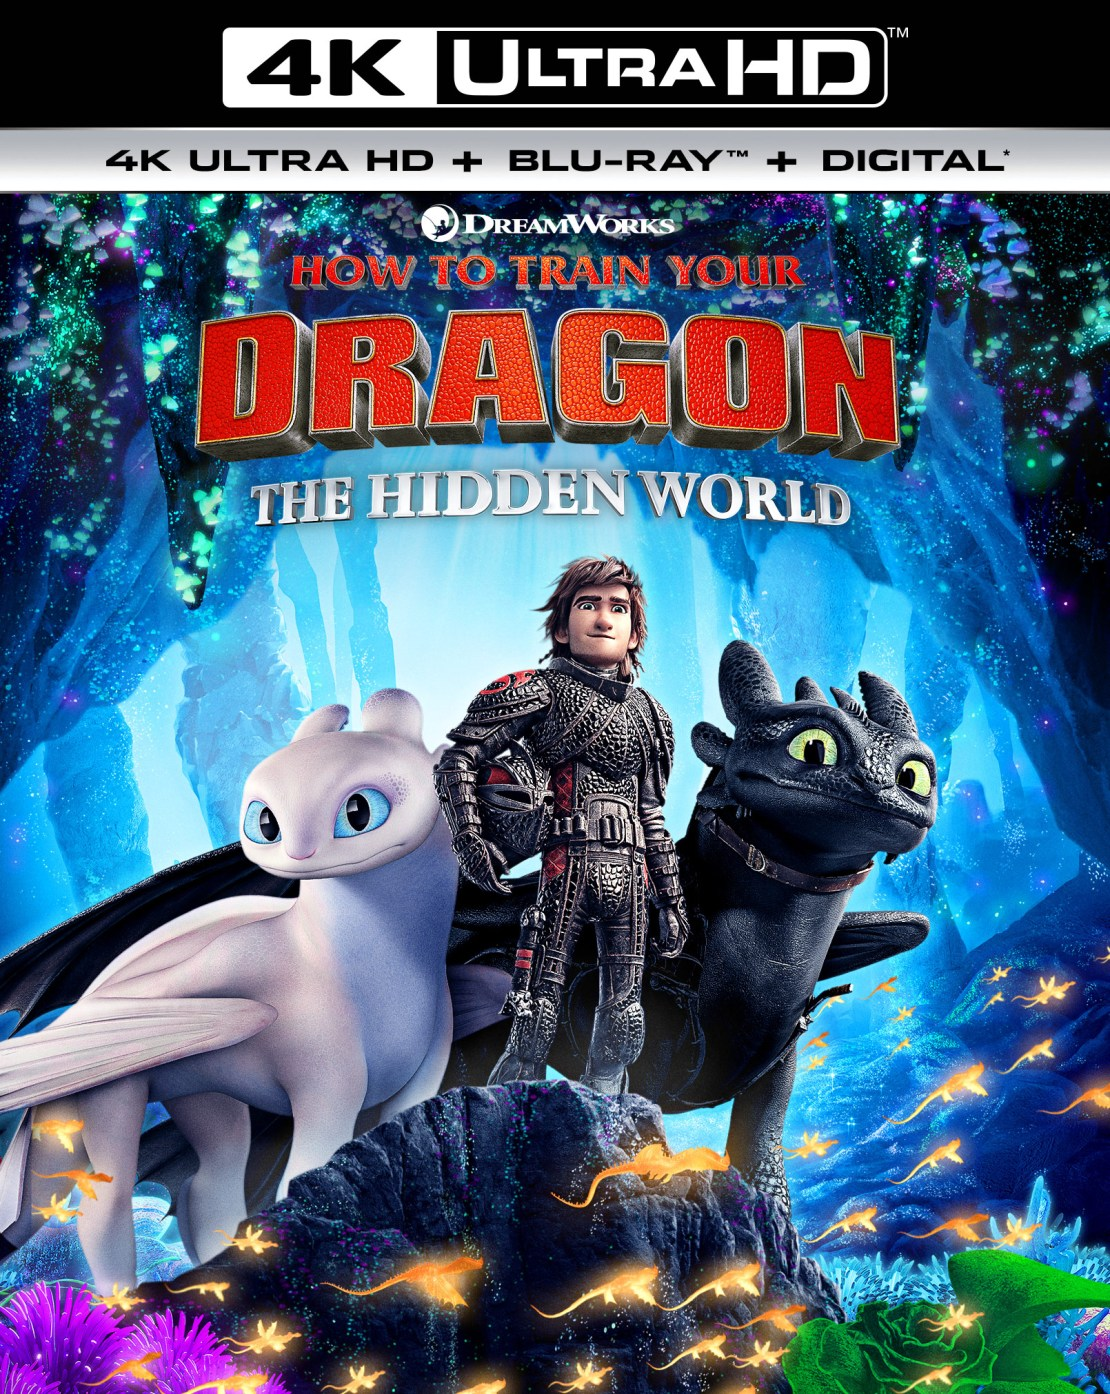 How to Train Your Dragon: The Hidden World [Includes Digital Copy] [4K Ultra HD Blu-ray/Blu-ray] [2019]